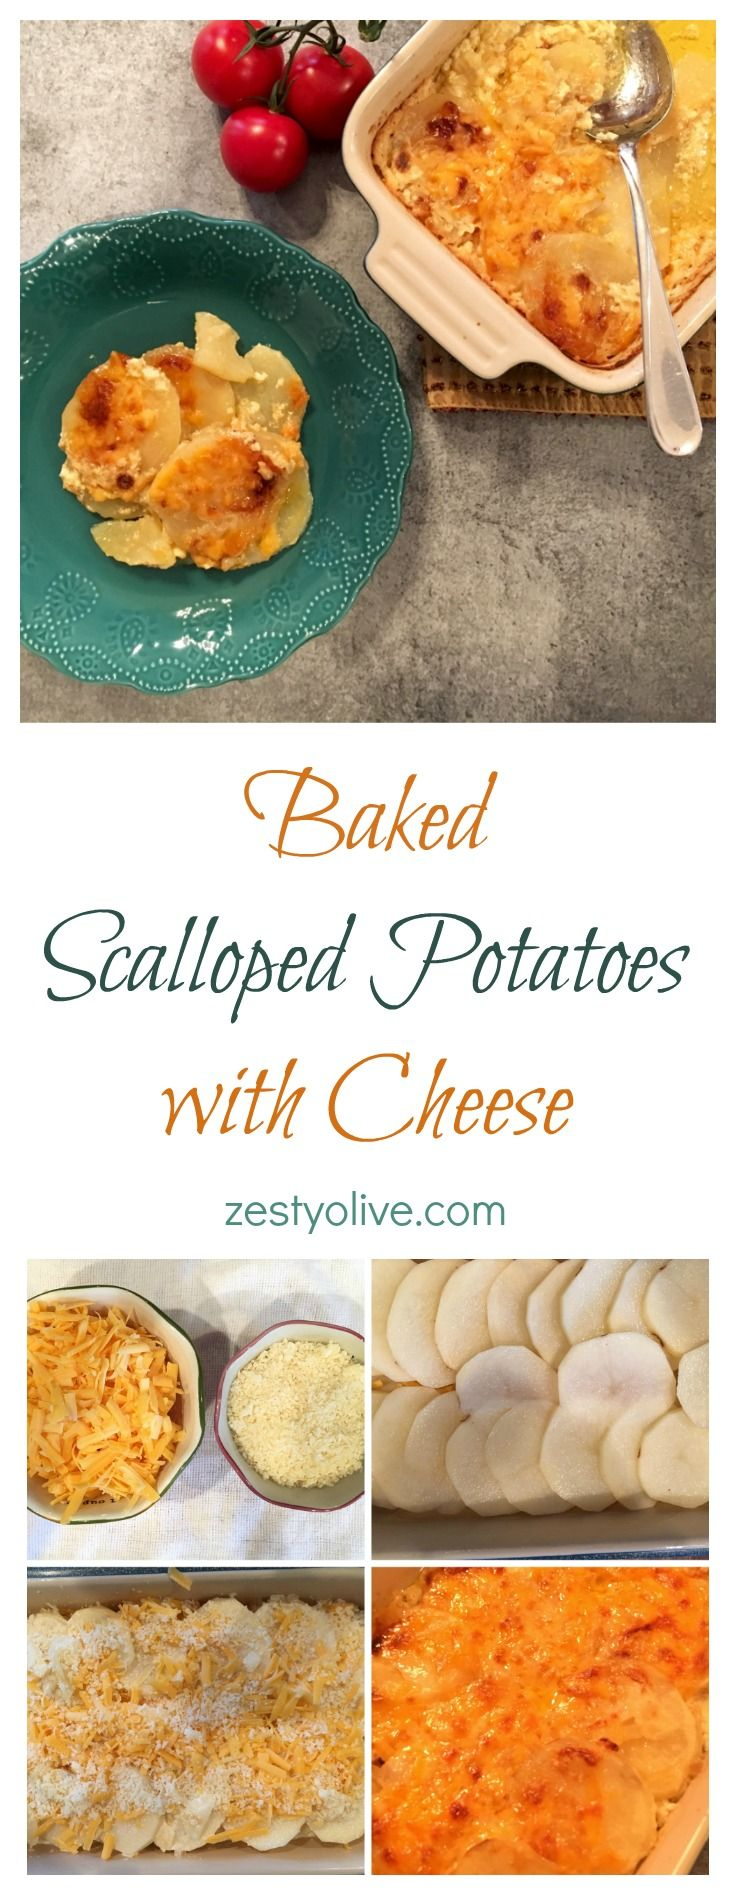 Baked Scalloped Potatoes With Cheese